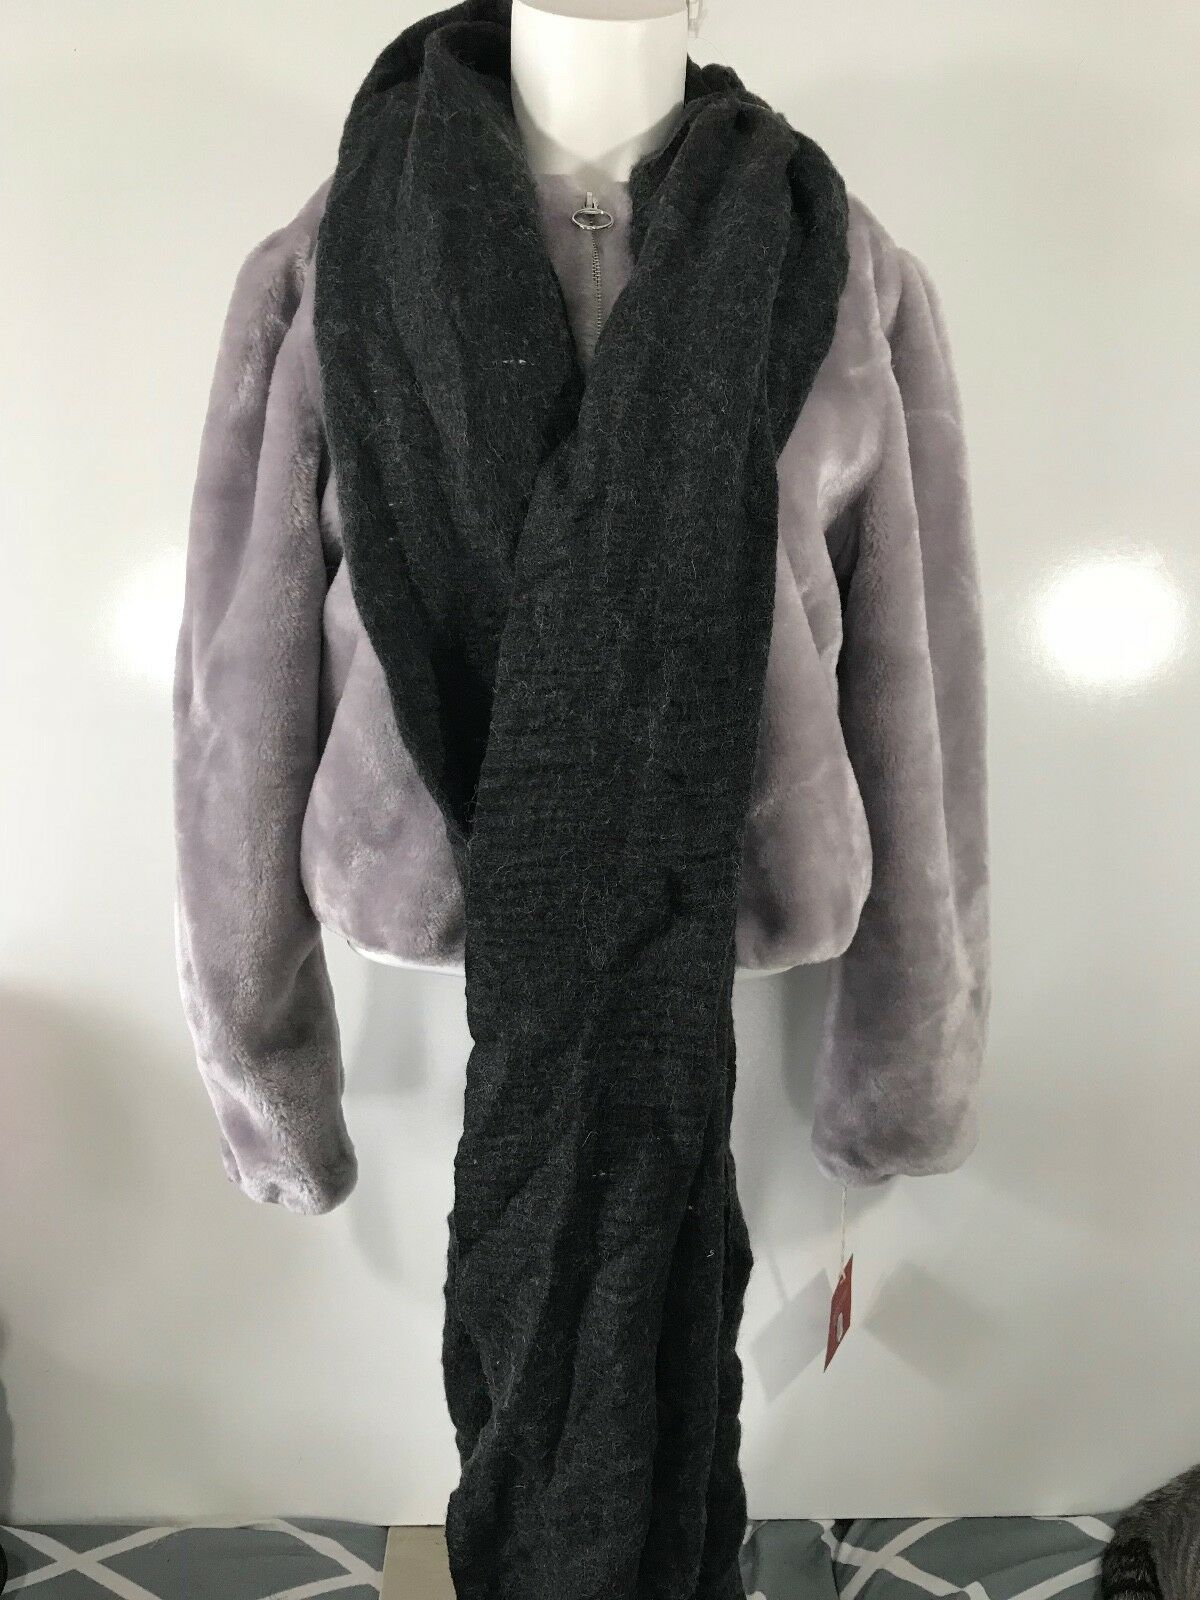 A New Day Long Rectangular Charcoal Gray Winter Scarf with Fringe on Both Ends